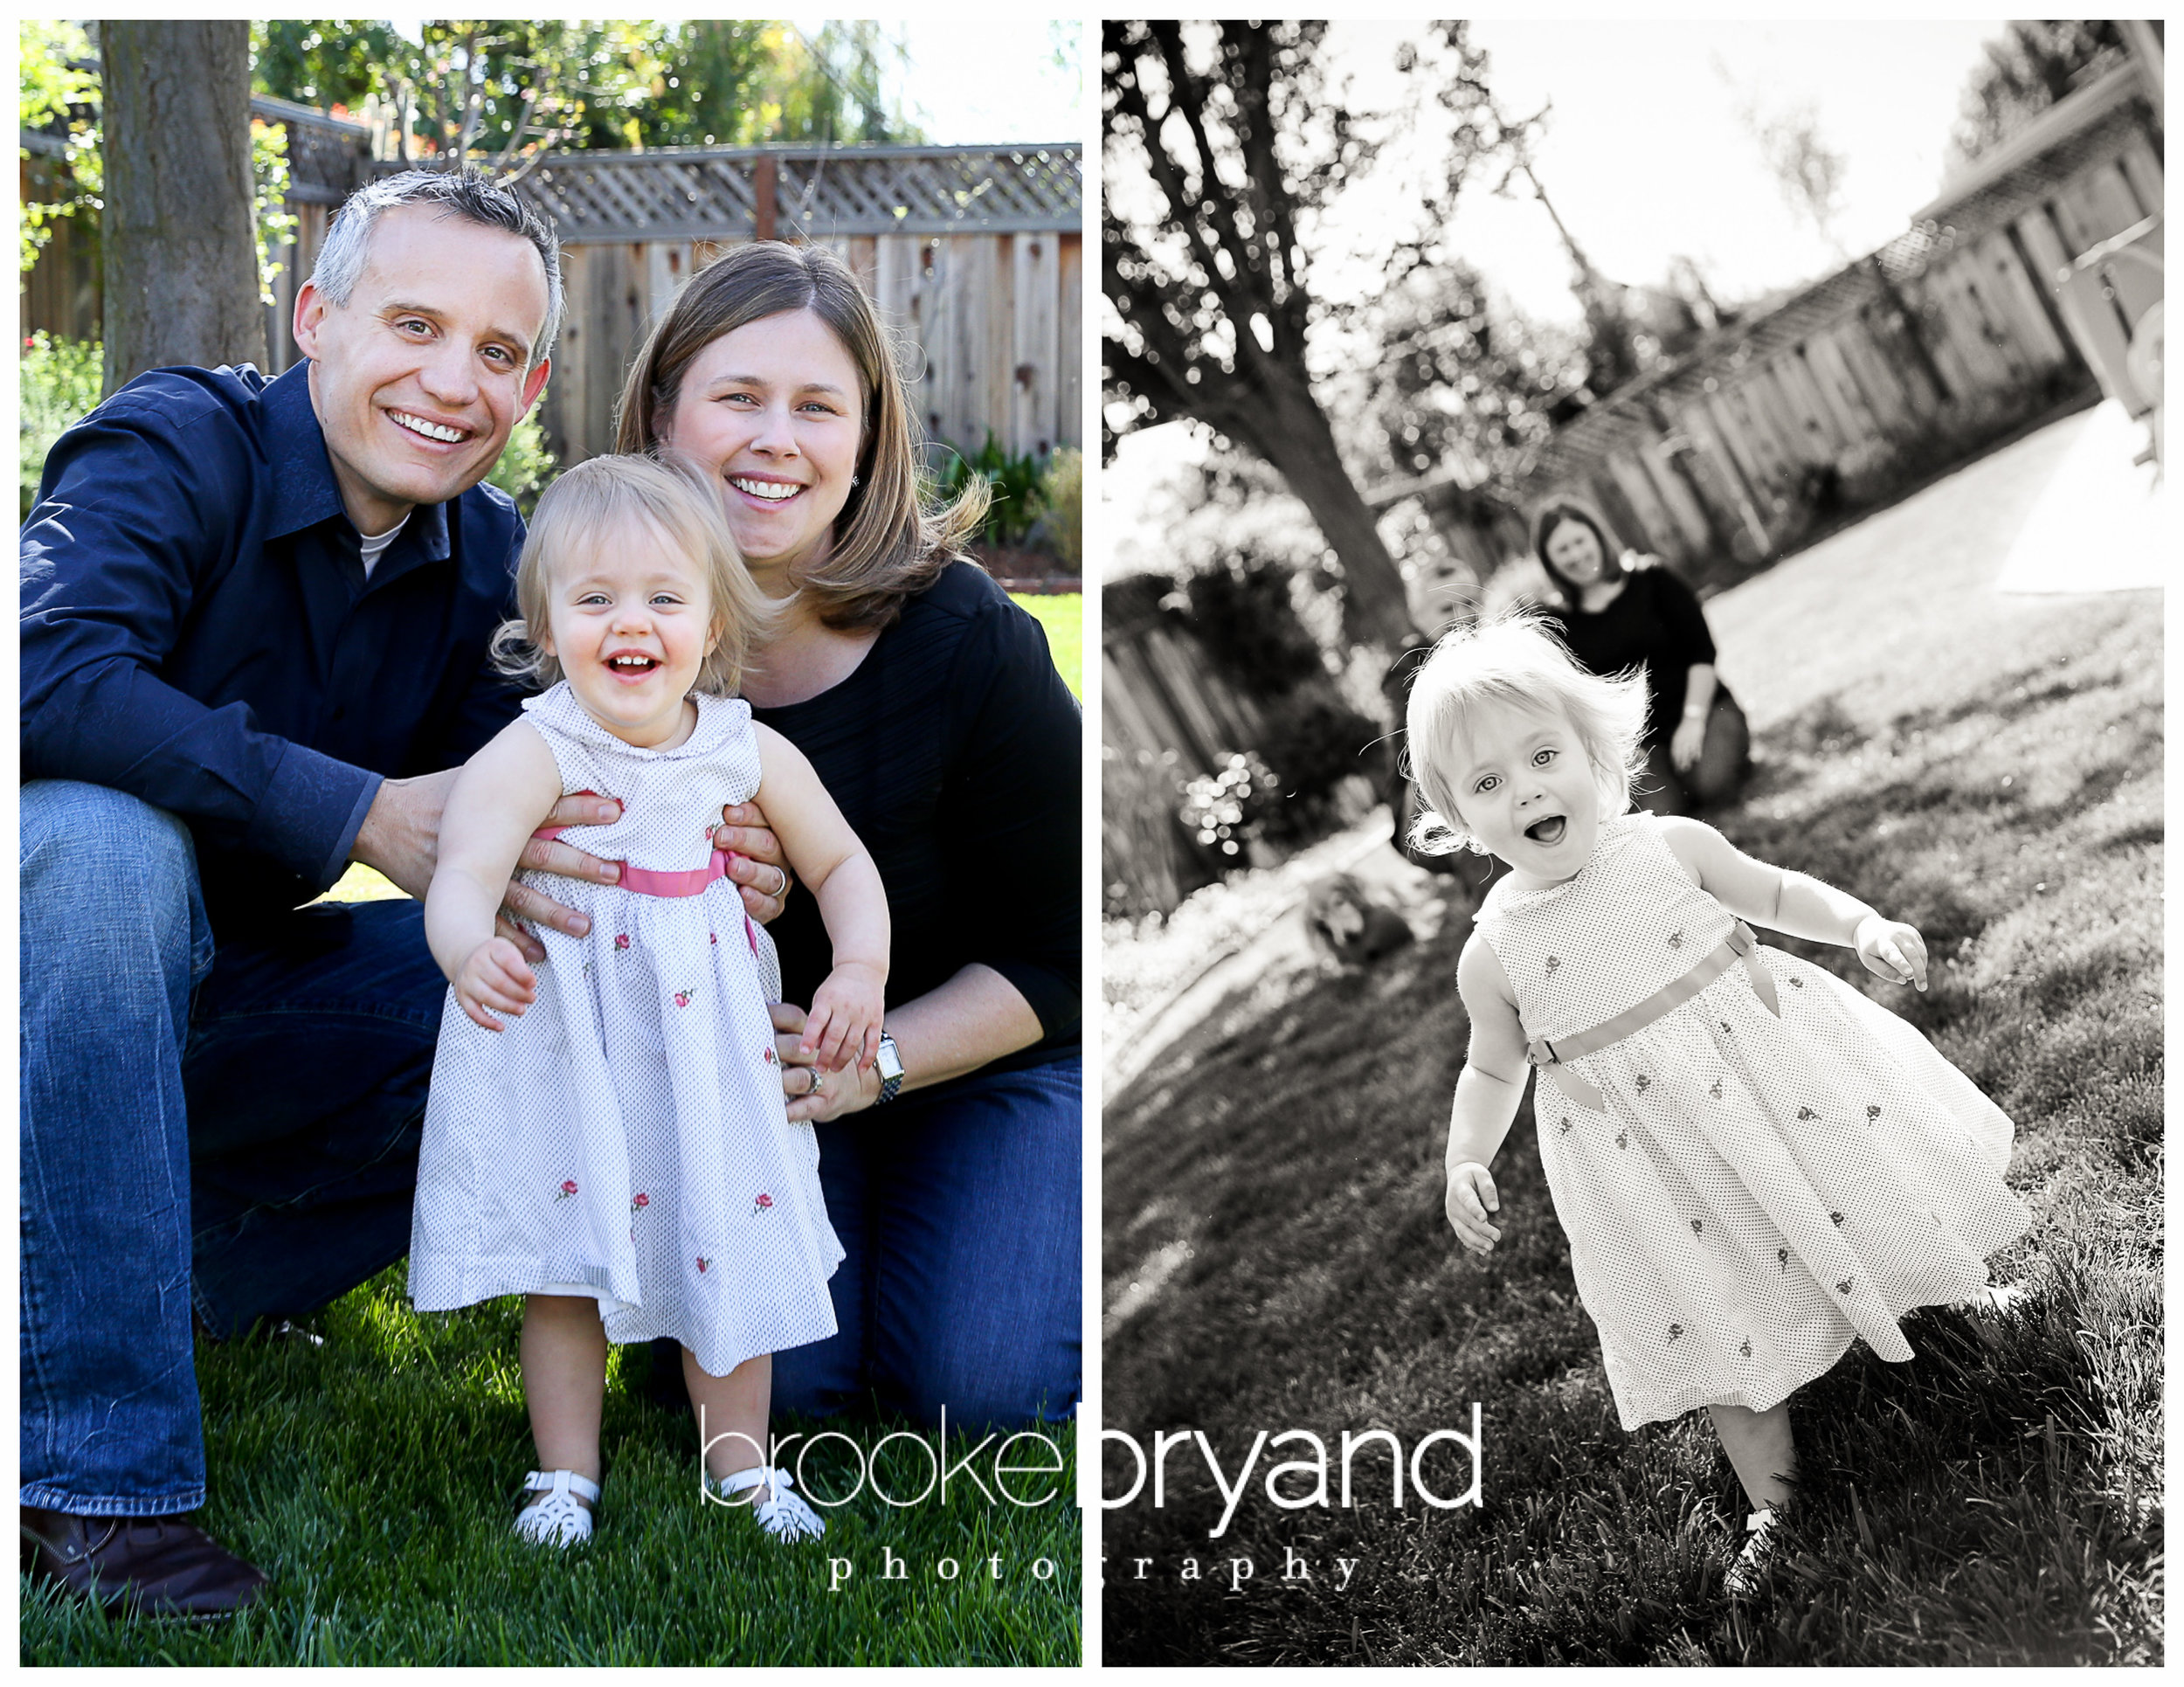 Brooke-Bryand-Photography-San-Francisco-Family-Photographer-2-up-martin-3.jpg